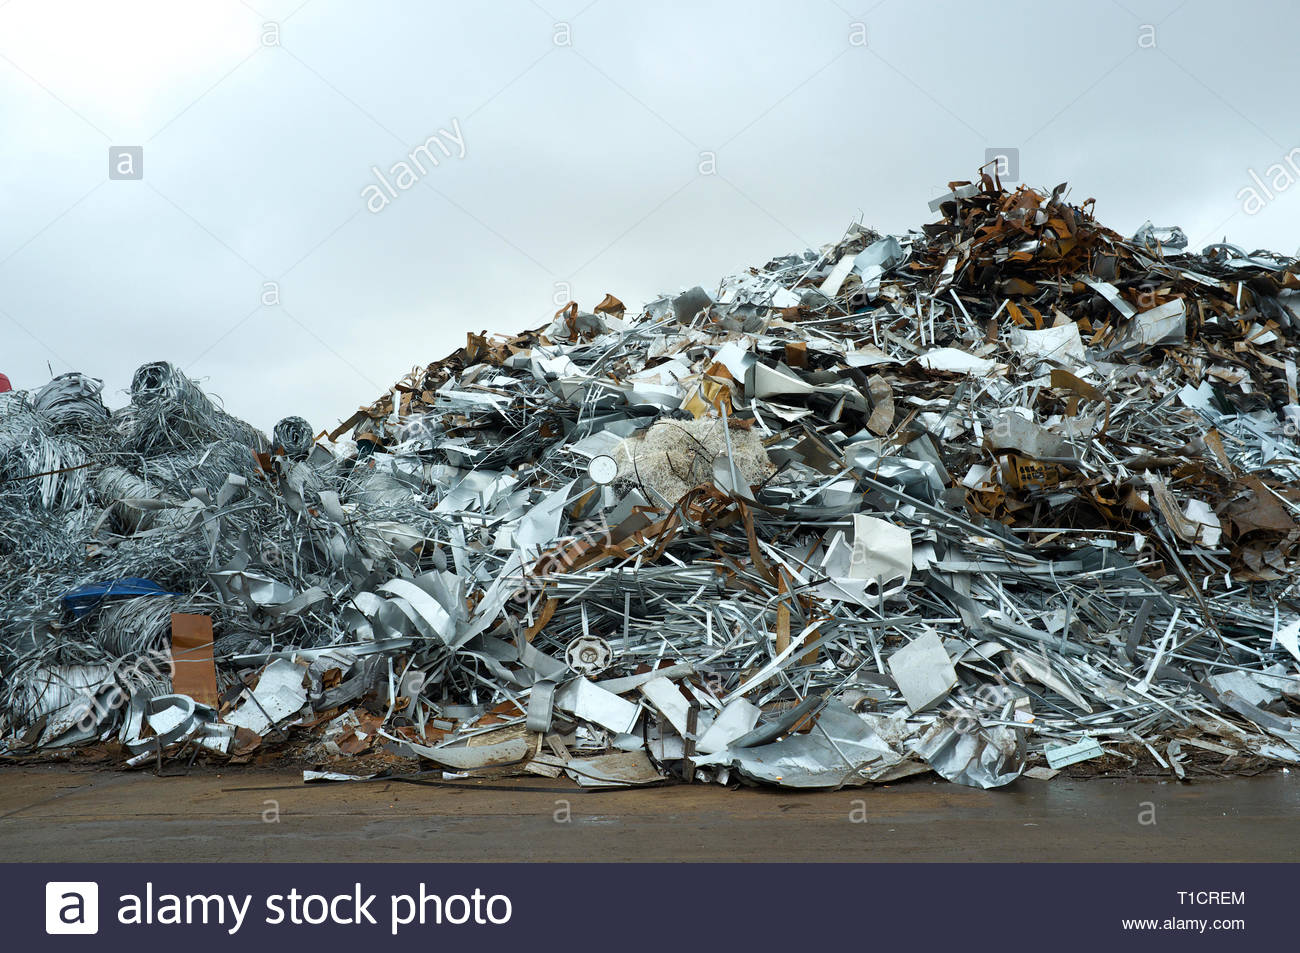 Pile of scrap metal in yard, for recycling. Cardiff, UK. Stock Photo